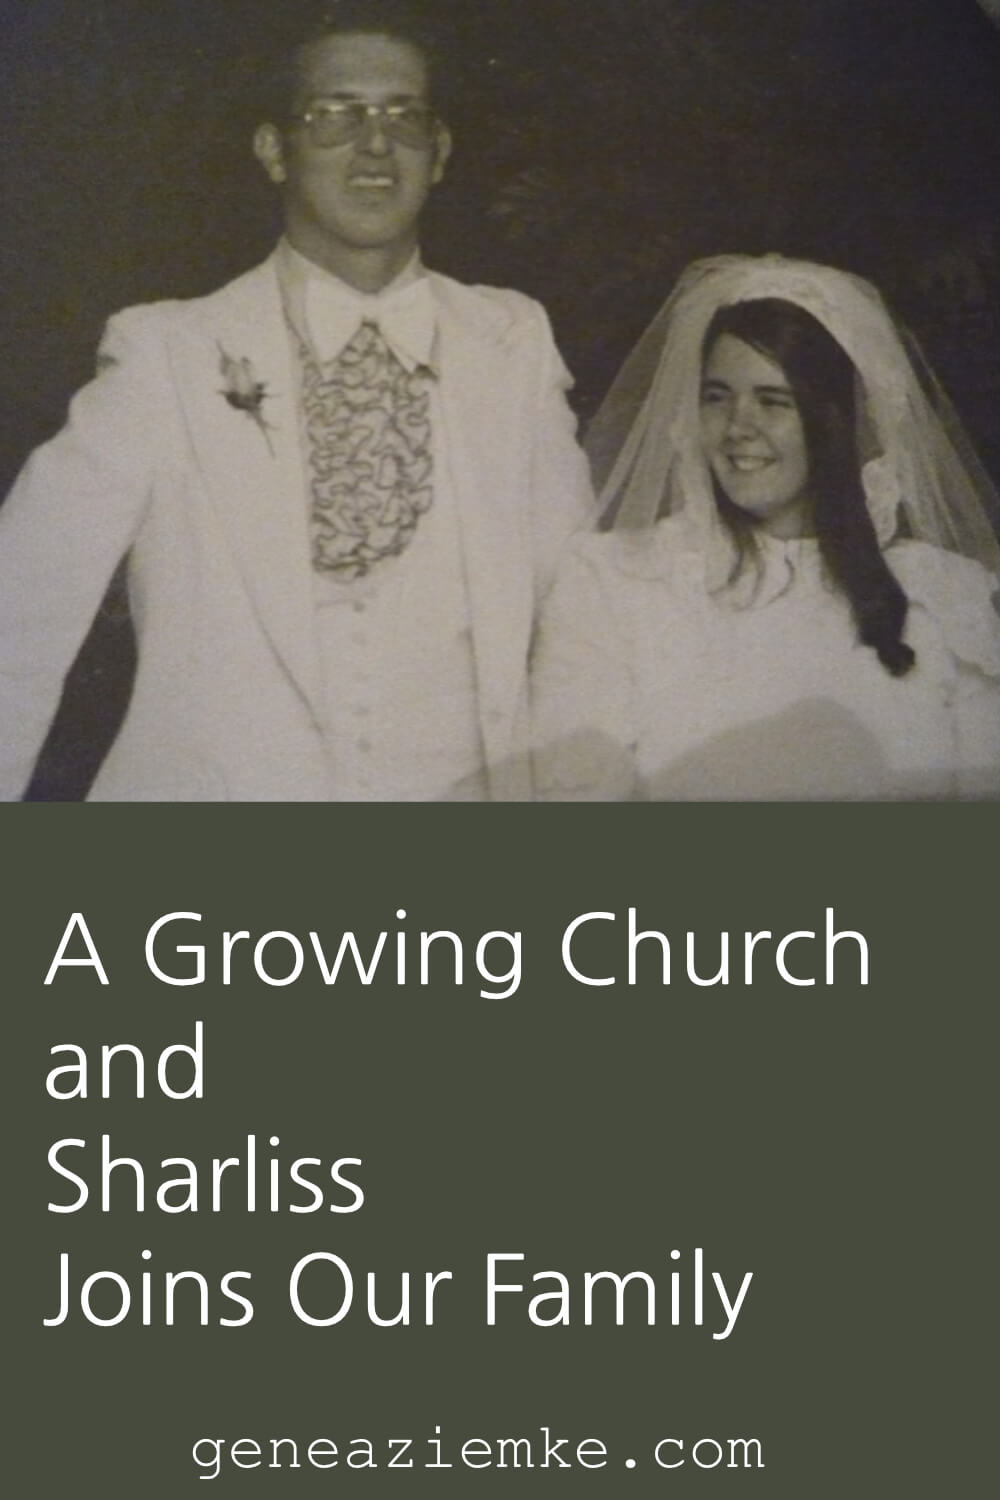 A Growing Church and Sharliss Joins Our Family